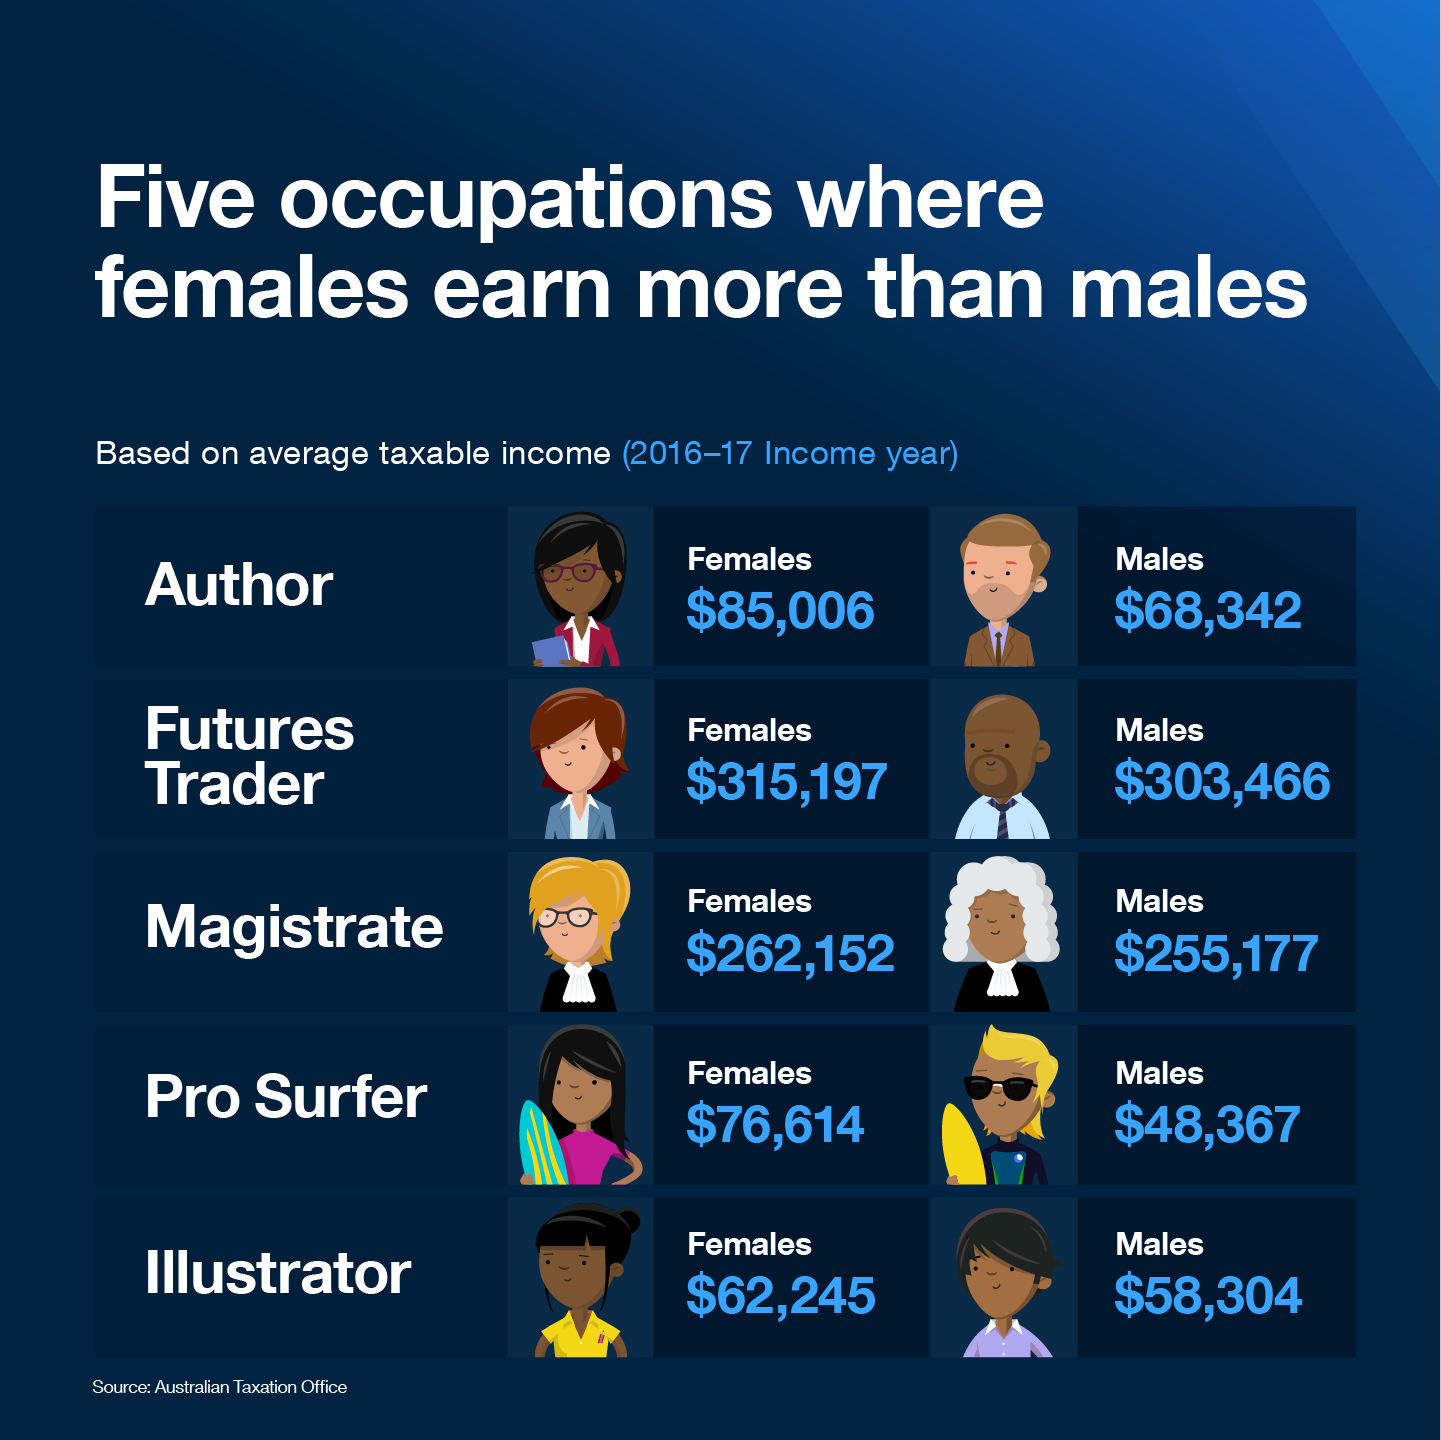 Five occupations where females earn more than males  Based on average taxable income (2016-17 Income year)  1. Author Females: $85,006 Males: $68,342  2. Futures Trader Females: $315,197 Males: $303,466  3. Magistrates Females: $262,152 Males: $255,177  4. Pro Surfer Females: $76,614 Males: $48,367  5. Illustrator Females: $62,245 Males: $58,304